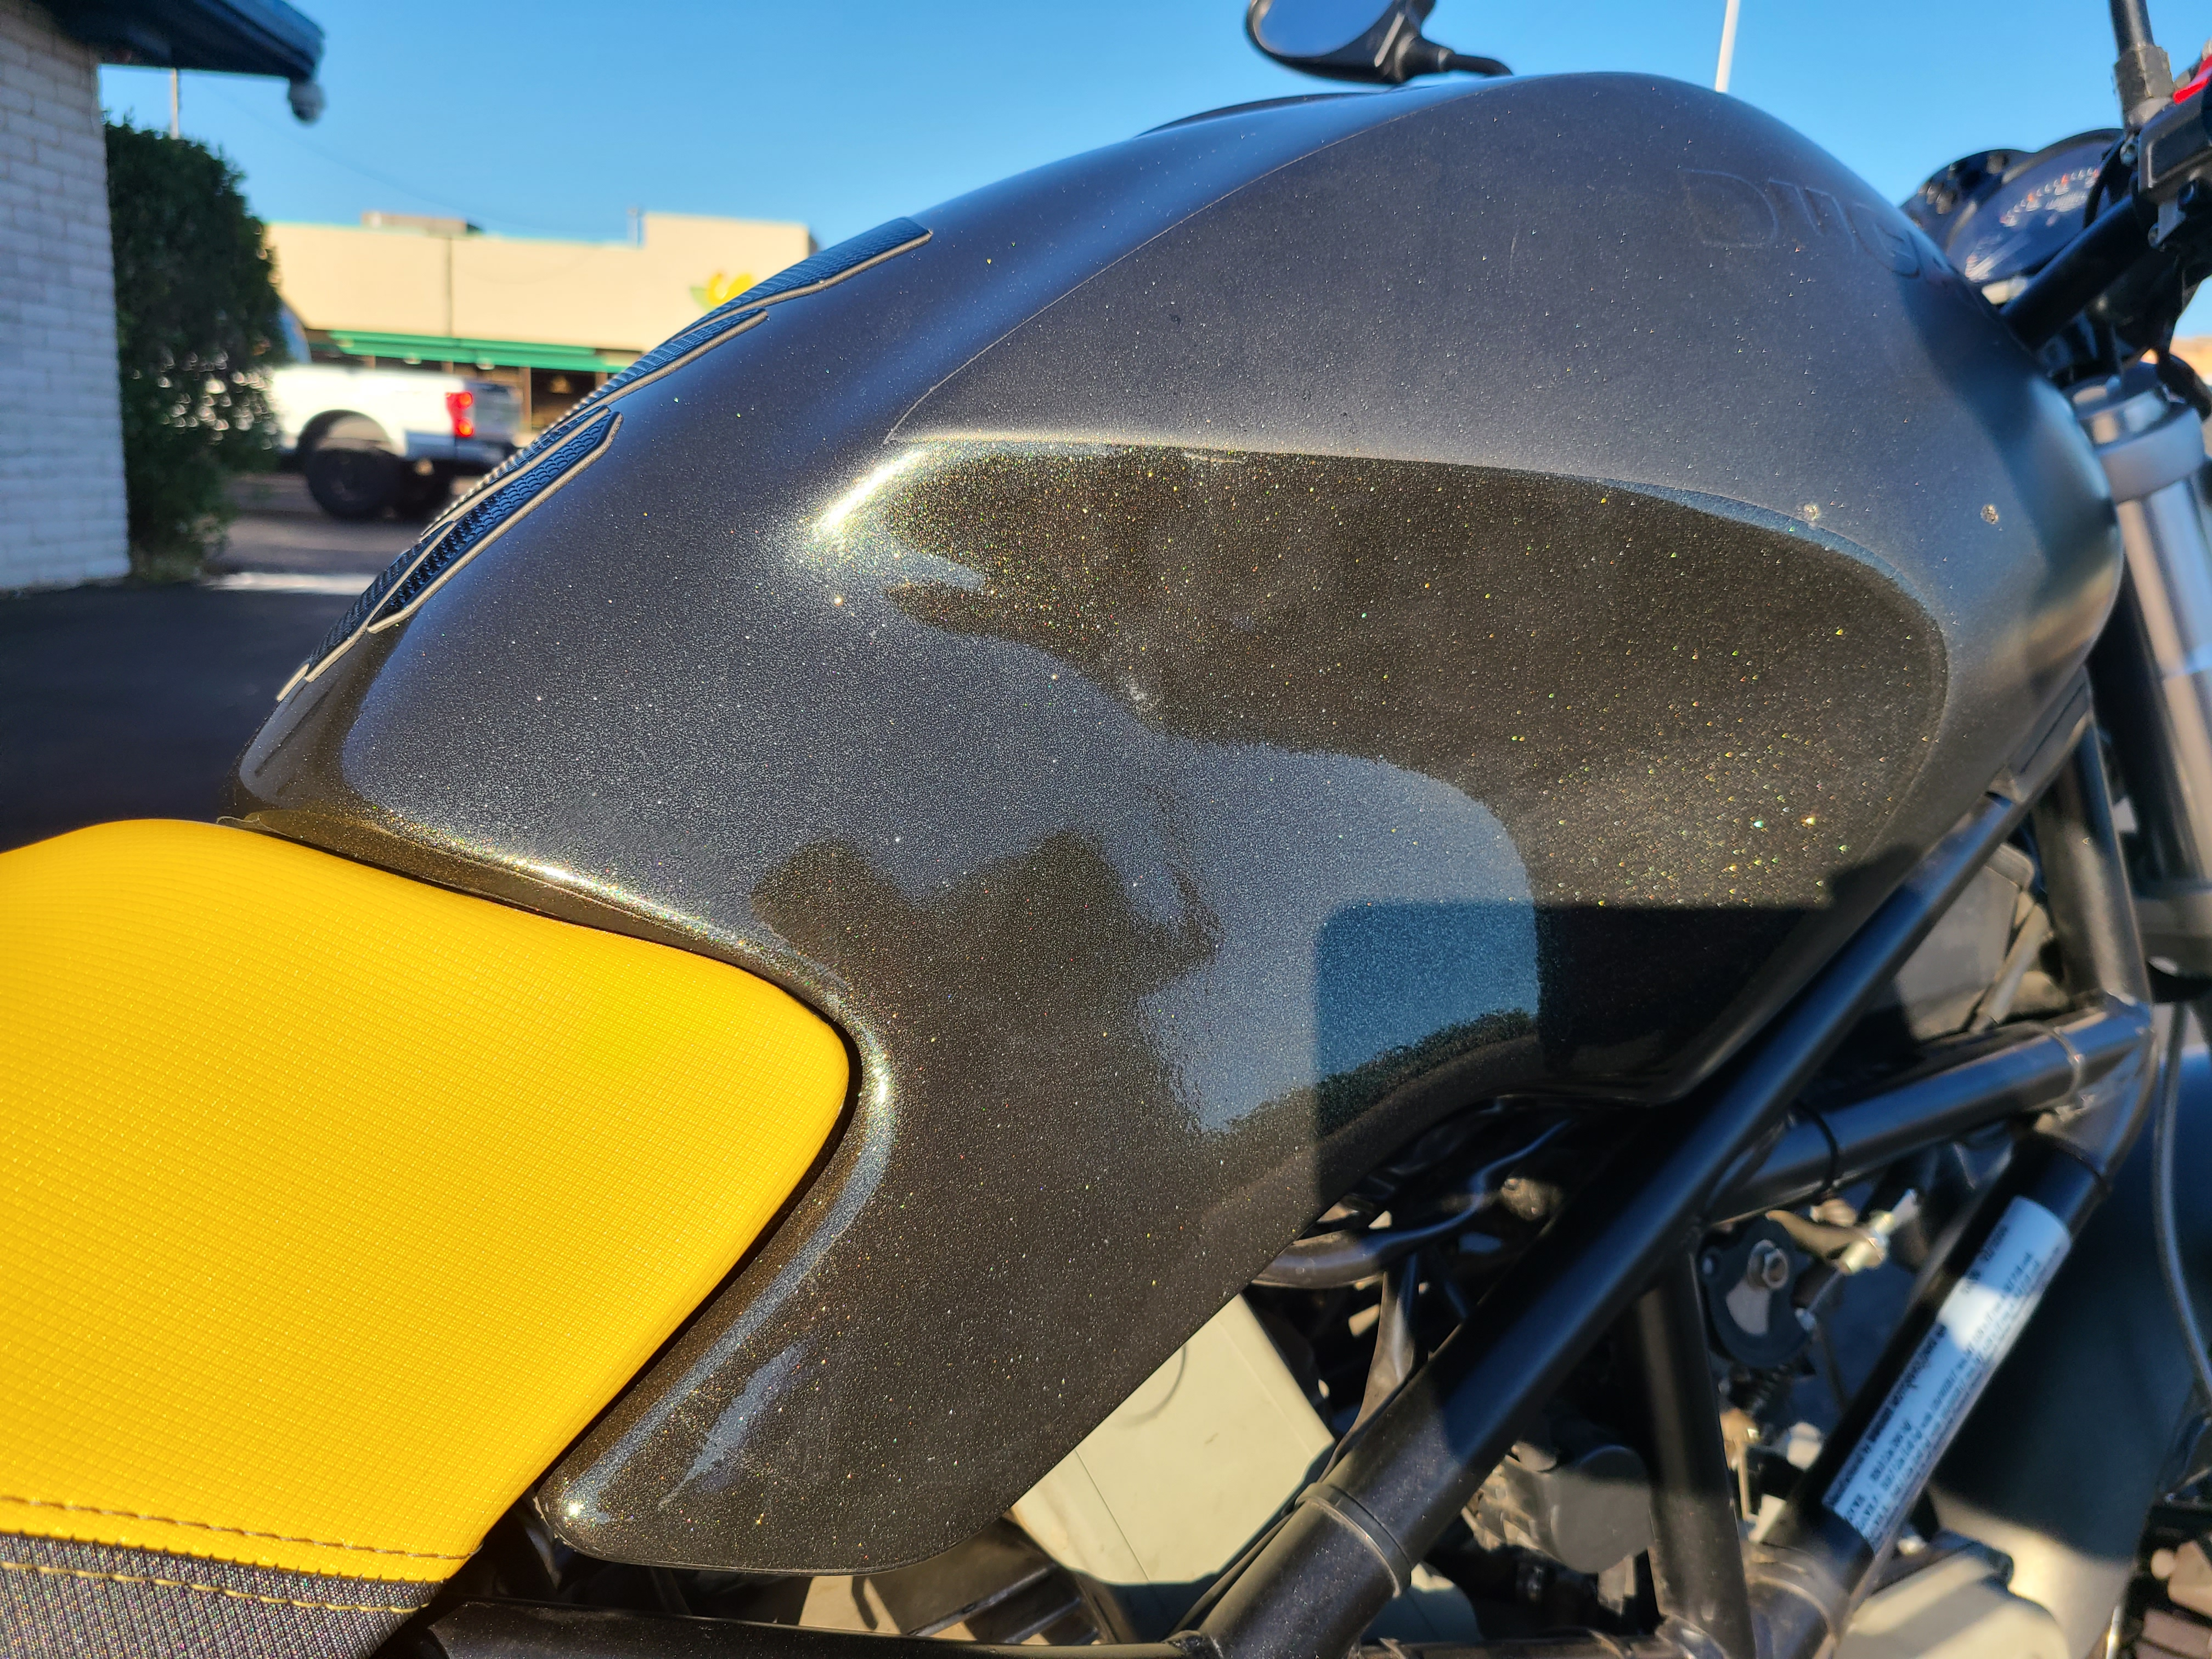 2006 Ducati Monster 620 at Bobby J's Yamaha, Albuquerque, NM 87110